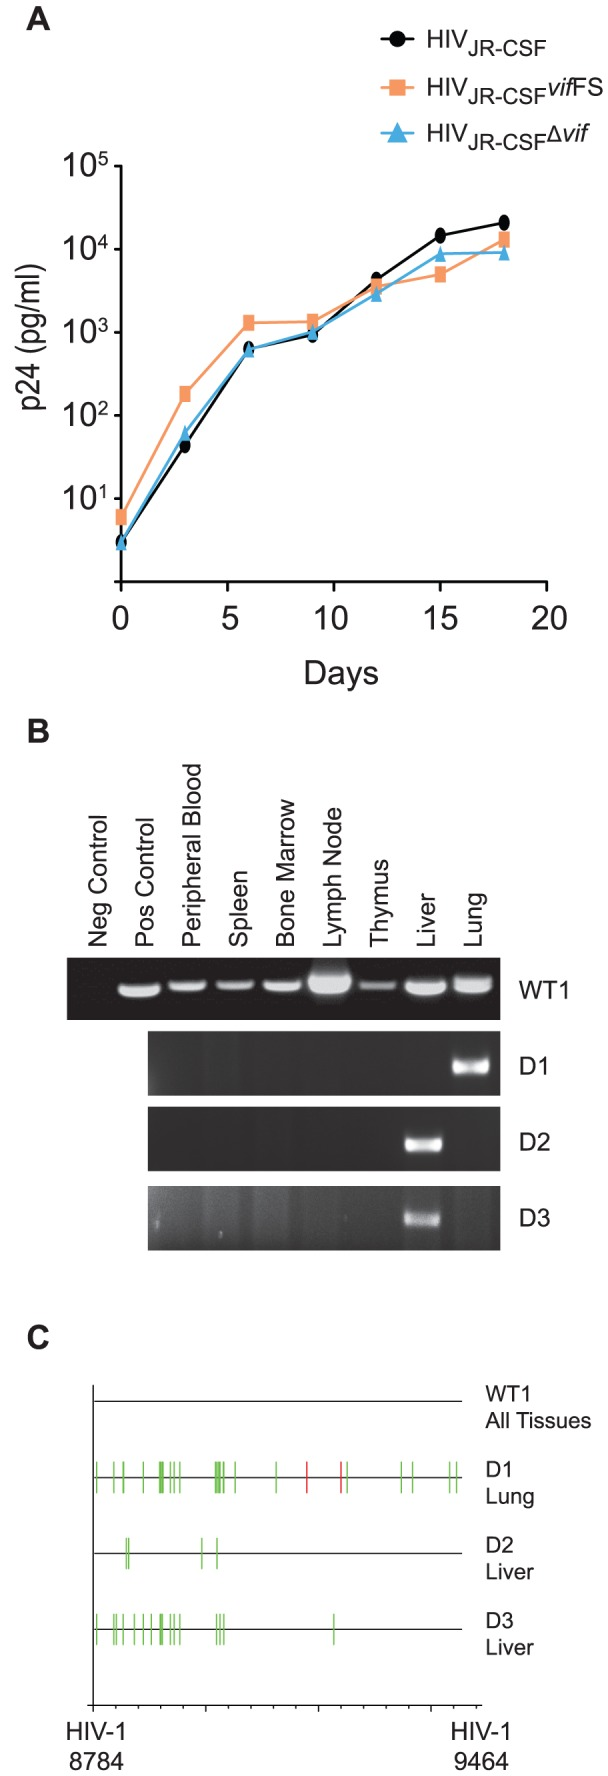 Human APOBEC3 rapidly restricts vif -deleted HIV-1 JR-CSF in vivo . (A) Replication of HIV JR-CSF , HIV JR-CSF Δ vif , and HIV JR-CSF vif FS in CEM-SS cells expressing CCR5 (CEM-SS CCR5). Culture supernatant was assayed for p24 Gag by ELISA at three day intervals to determine the replication kinetics of the mutant viruses. (B) Nested PCR amplification of viral DNA from the tissues obtained one week post-exposure from a representative NSG-hu mouse infected with 9×10 4 TCIU of wild-type HIV-1 JR-CSF (WT1) or from three mice infected with 3.6×10 5 TCIU of HIV JR-CSF Δ vif (indicated as D1–3). (C) Highlighter sequence analysis of 7 wild-type and 3 Δ vif HIV DNA sequences. Amplified viral DNA from panel A showed no APOBEC3 induced mutations in HIV JR-CSF (WT1 all sequence from tissues is shown together). In contrast, viral DNA from all positive tissues obtained from HIV JR-CSF Δ vif infected mice had G to A (green lines) and/or C to T mutations (red lines). HIV-1 JR-CSF nucleotide numbers are indicated at the bottom.